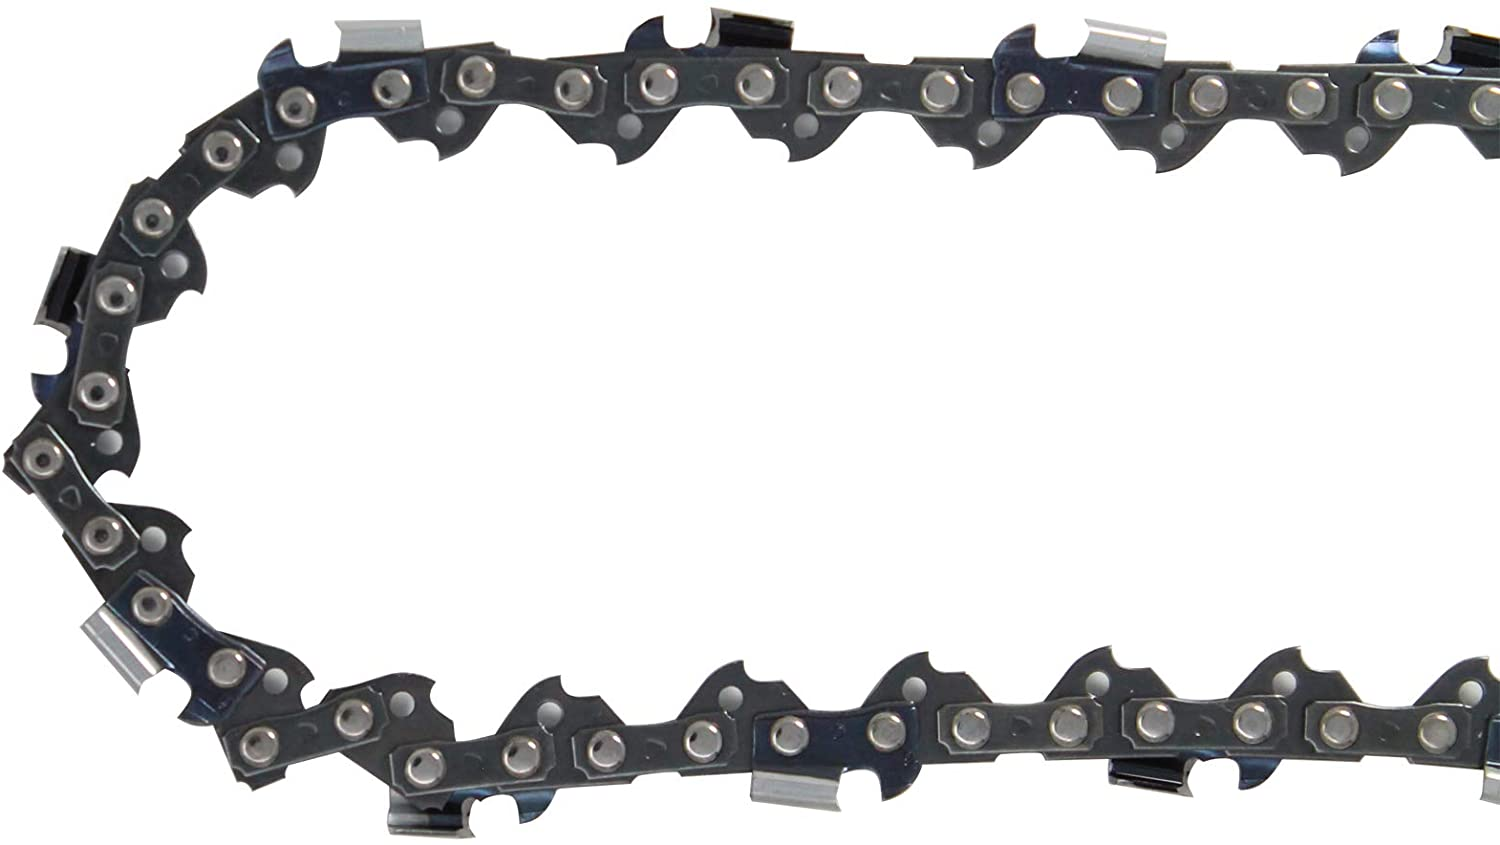 12, 3//8.043, 44 Drive Links 5-Pack 12-Inch Chainsaw Chain Replacement for Stihl 61PMM3 44